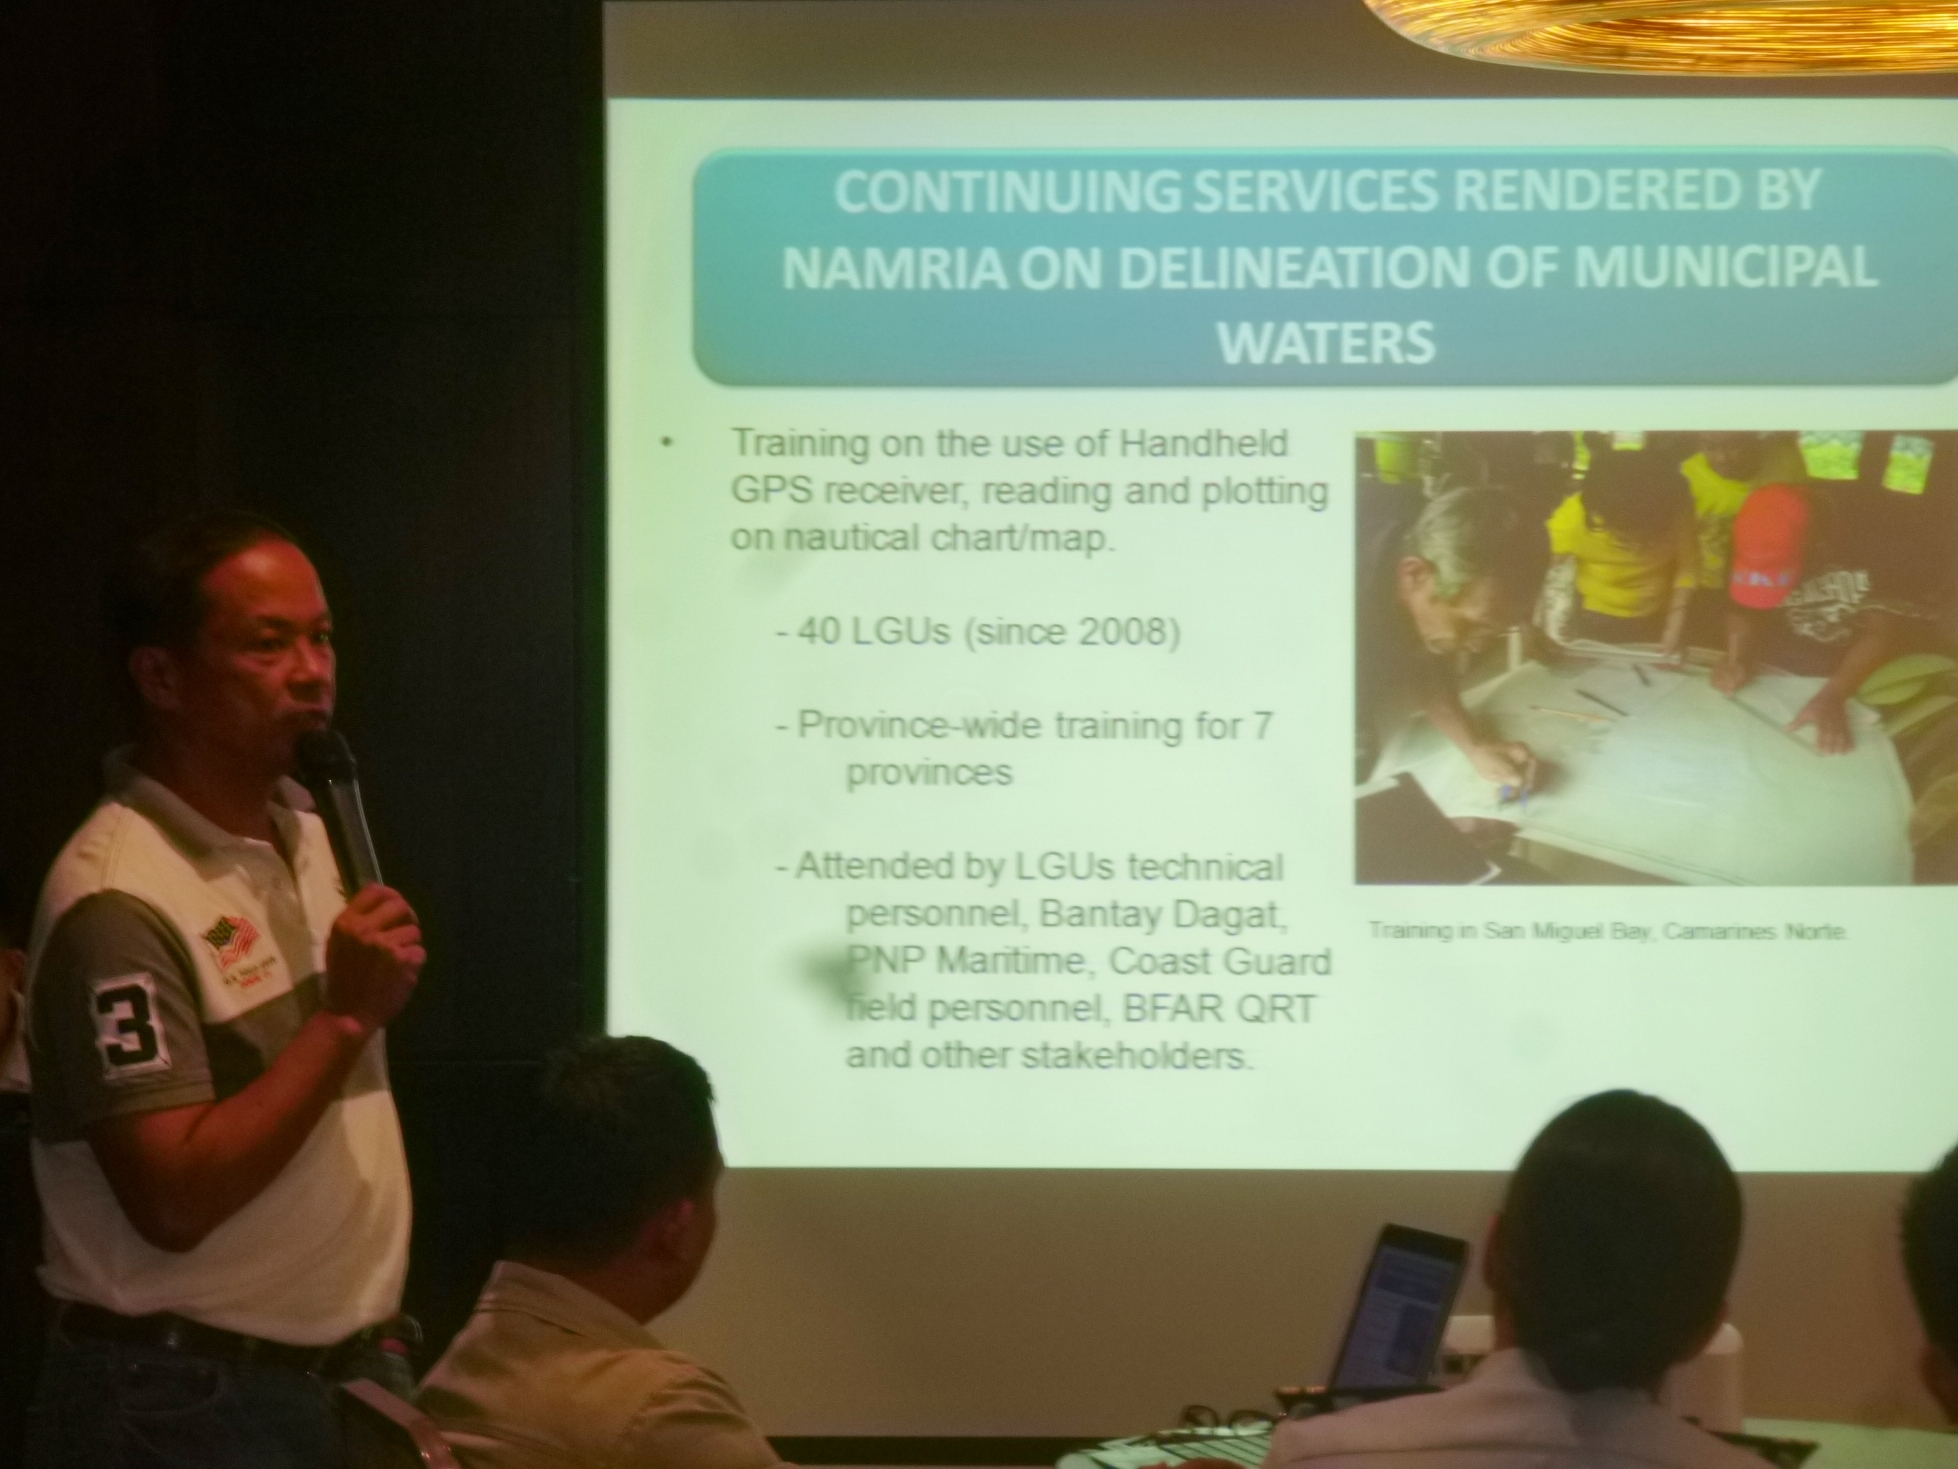 Engr. Mario Princer reports on the status of municipal water delineation.